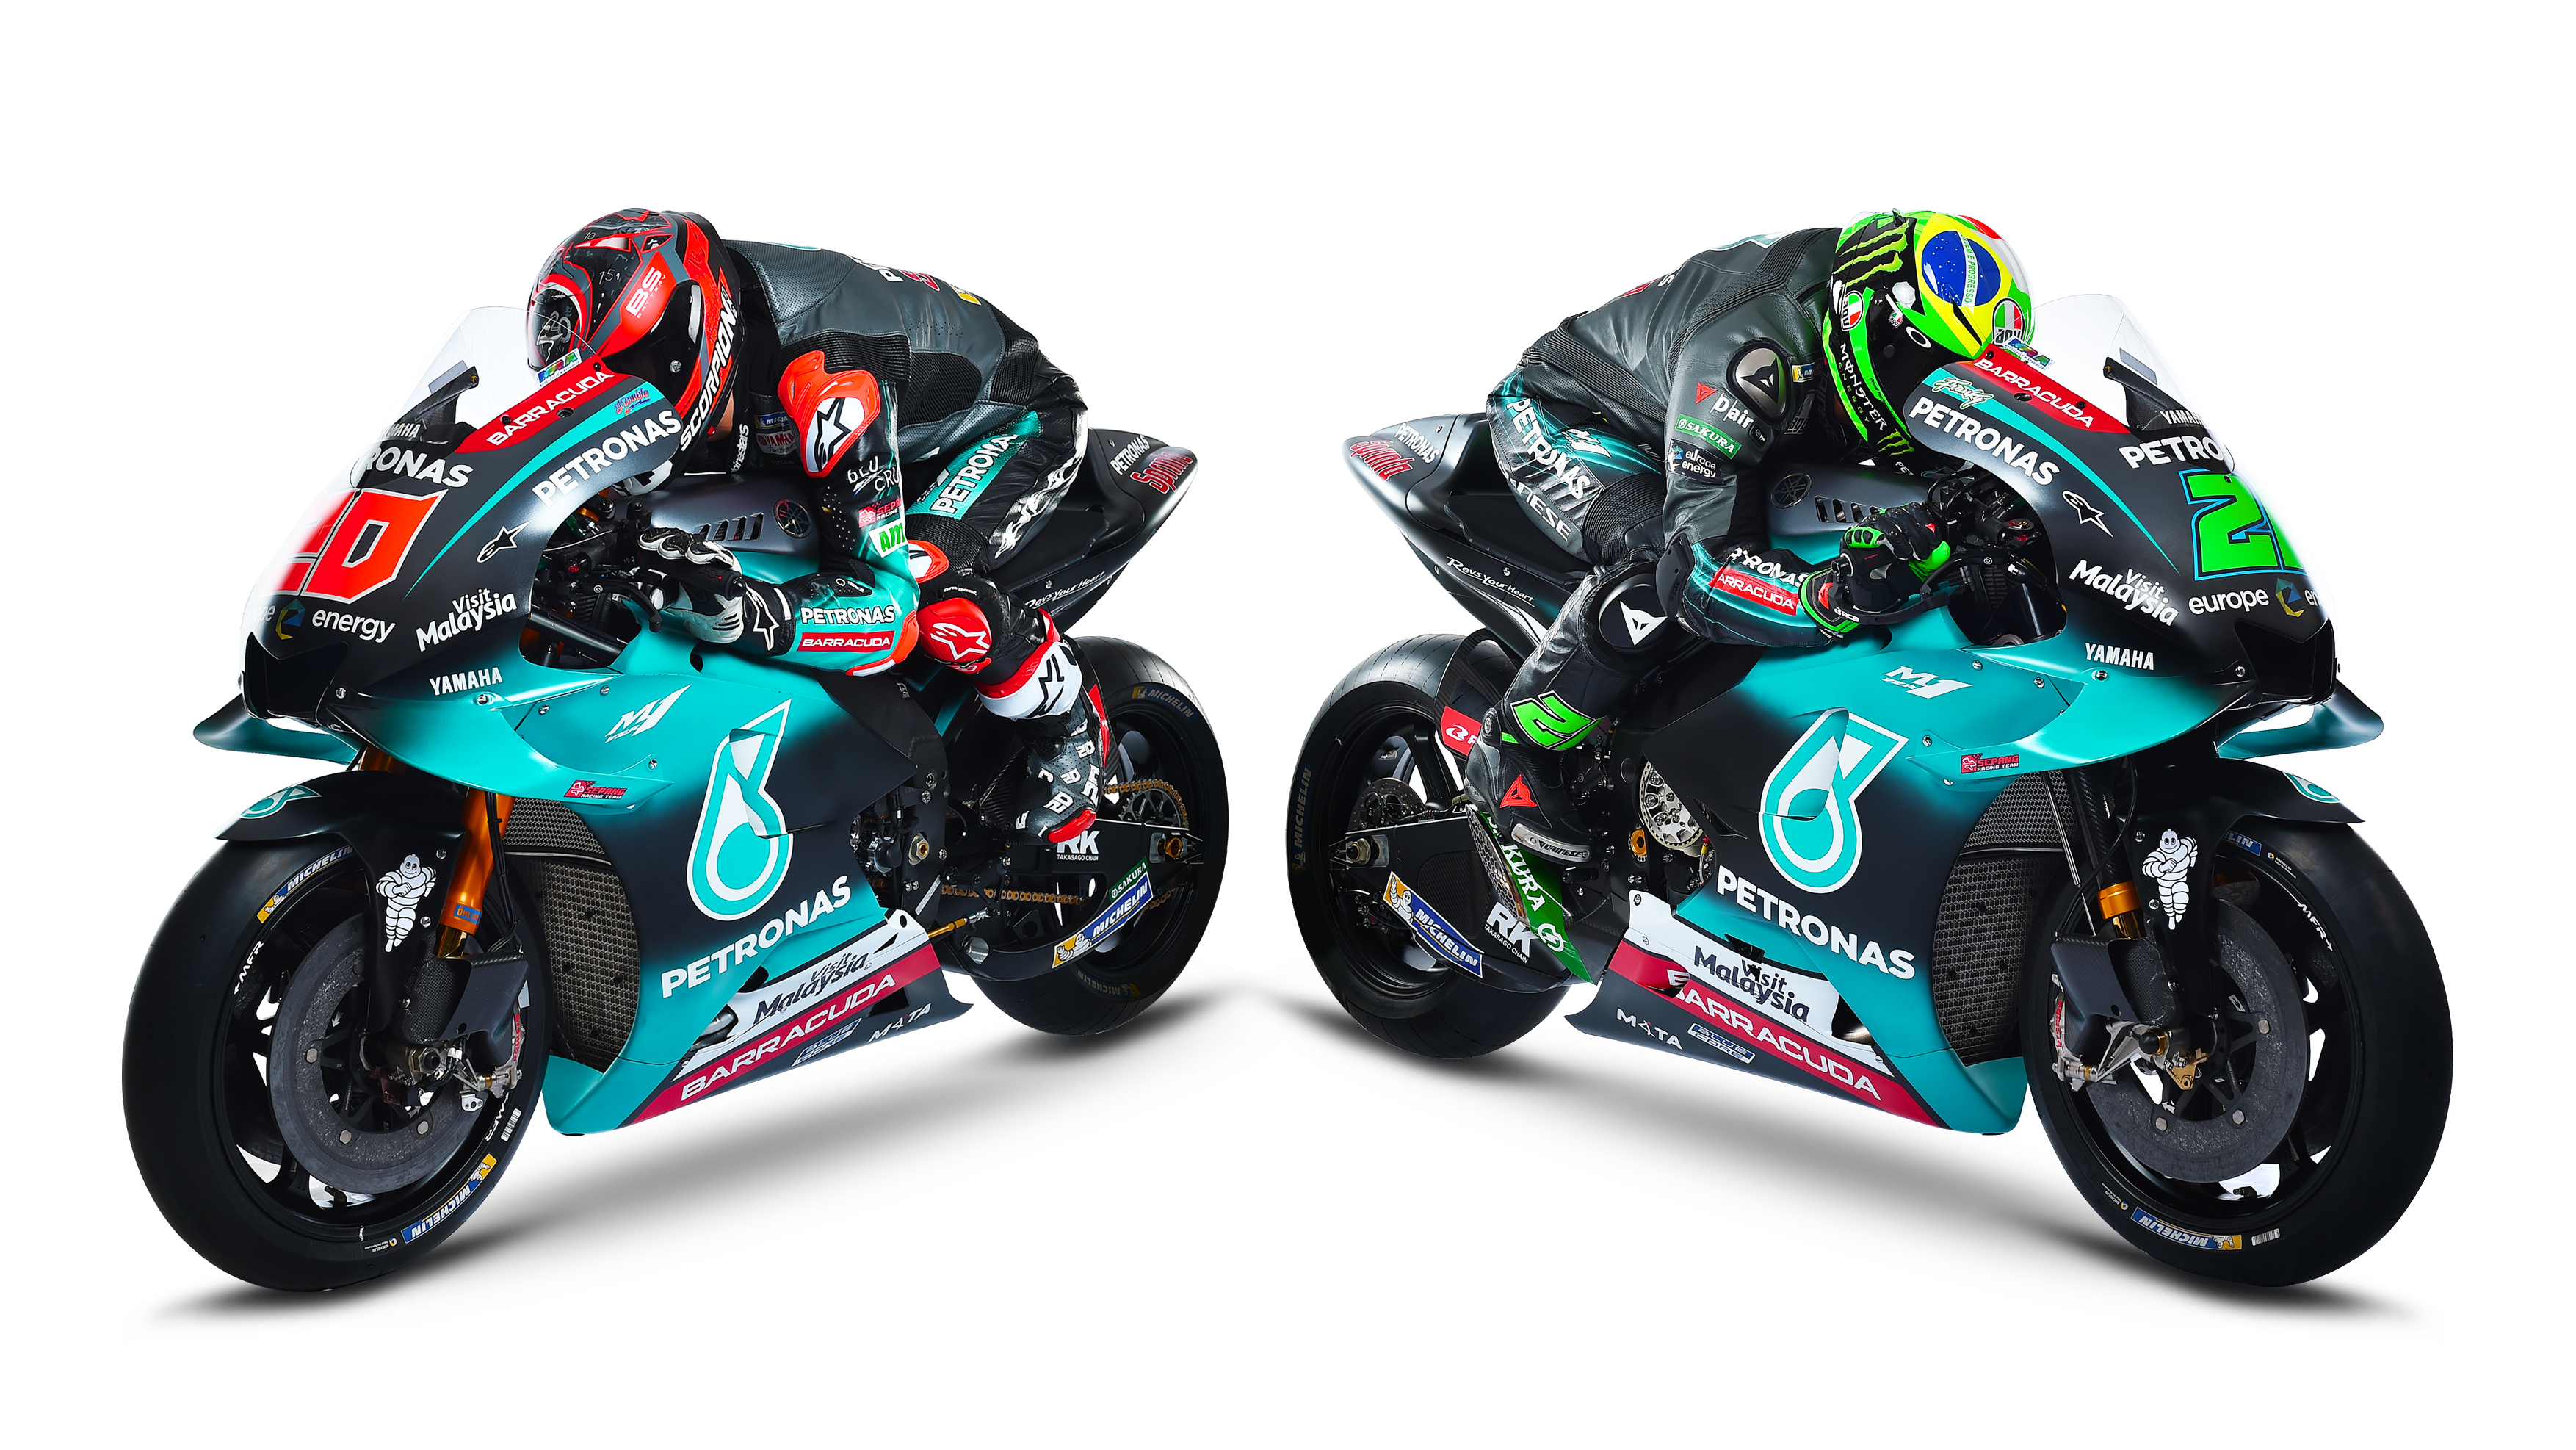 Petronas Yamaha Srt In Optimistic Mood For Historic First Motogp Race Total Motorcycle